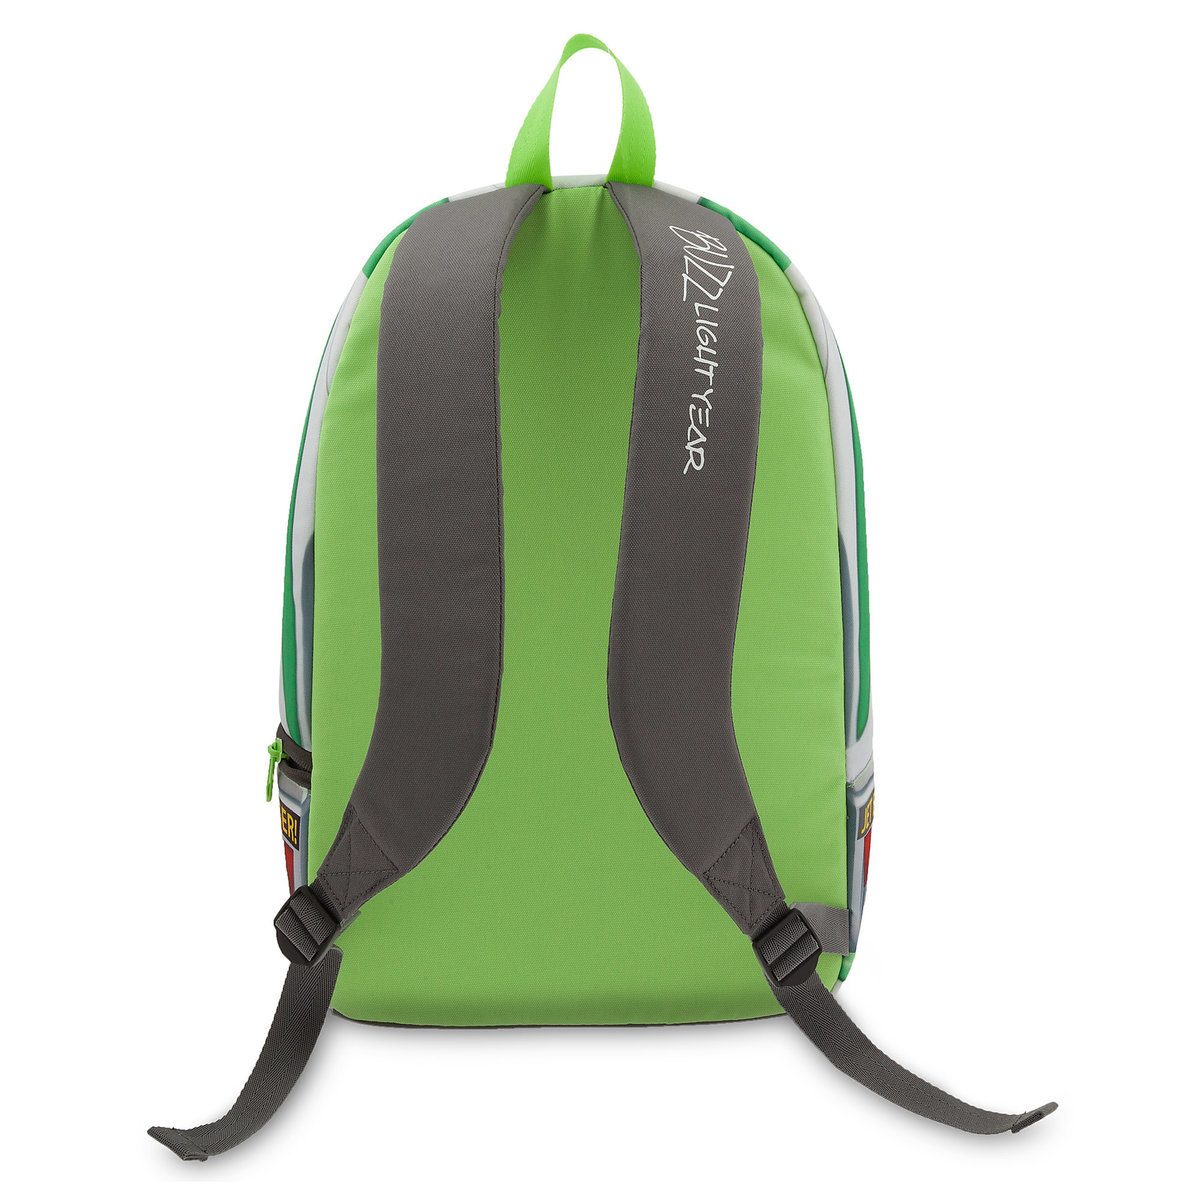 faef00963be Product Image of Buzz Lightyear Backpack   3